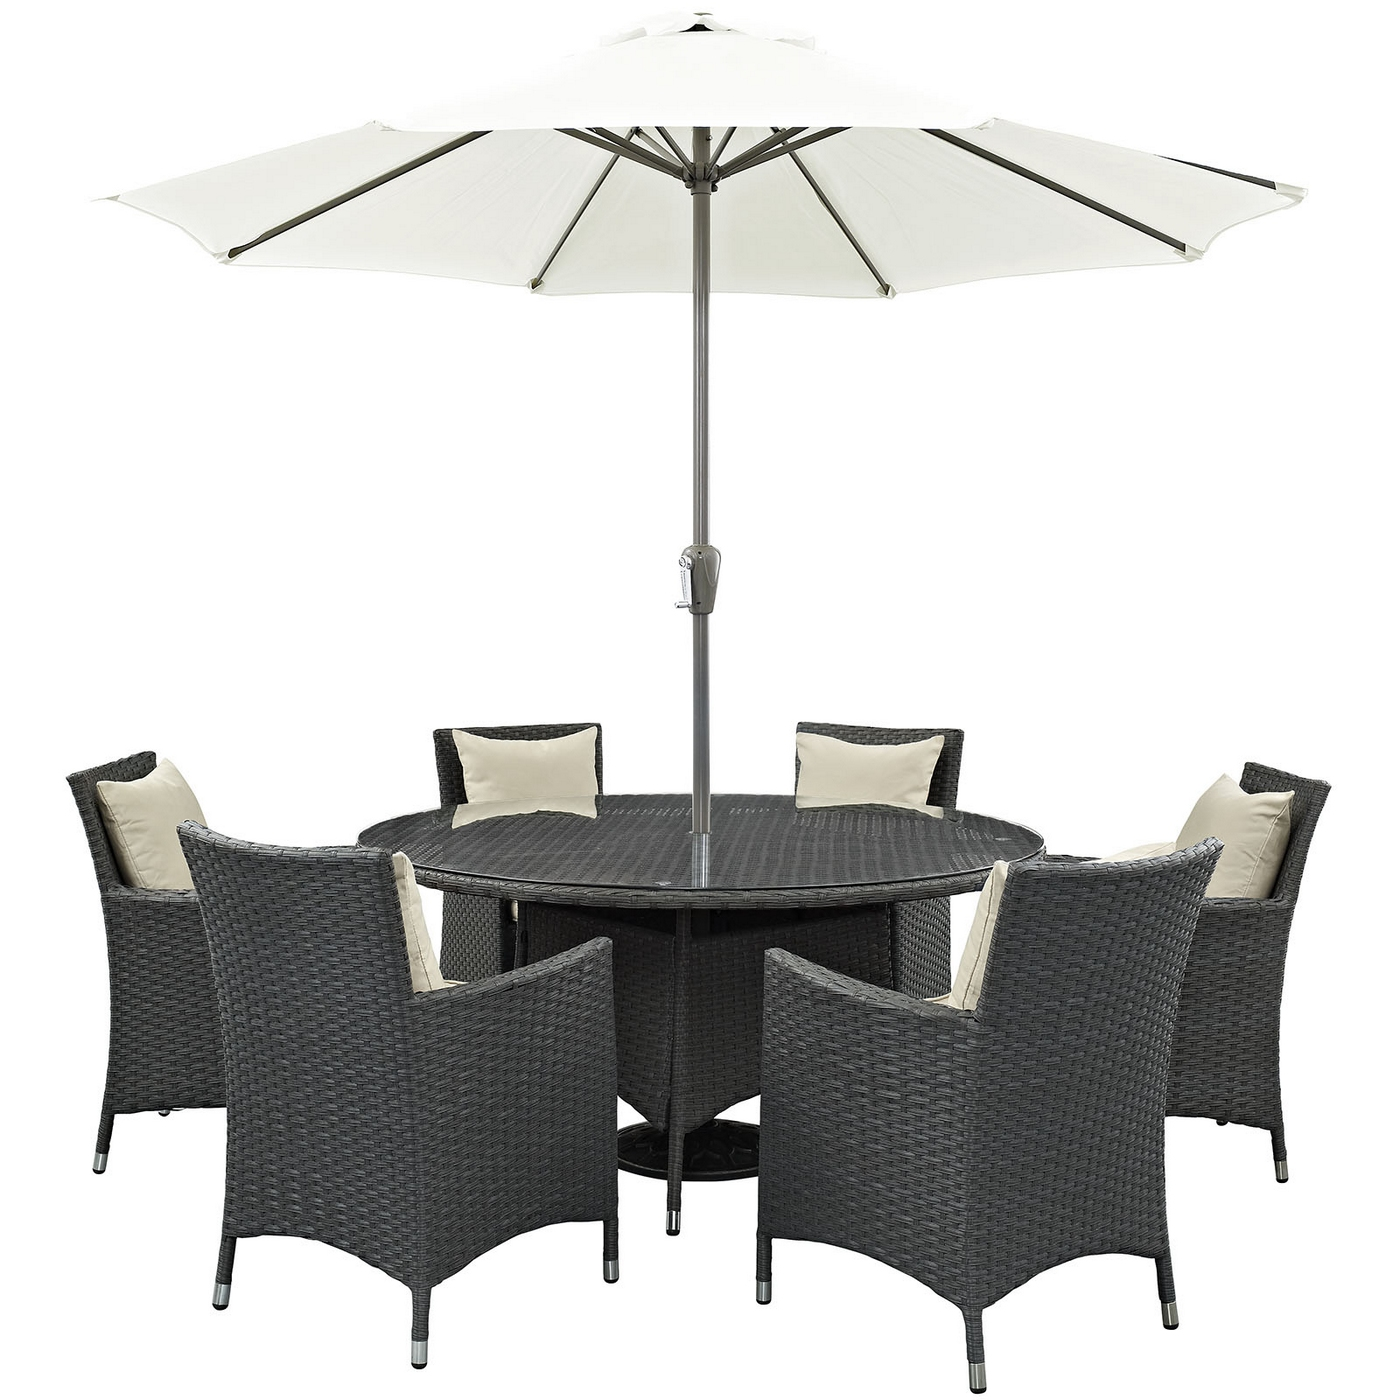 Sojourn 8 Piece Rattan Outdoor Patio Sunbrella Round Dining